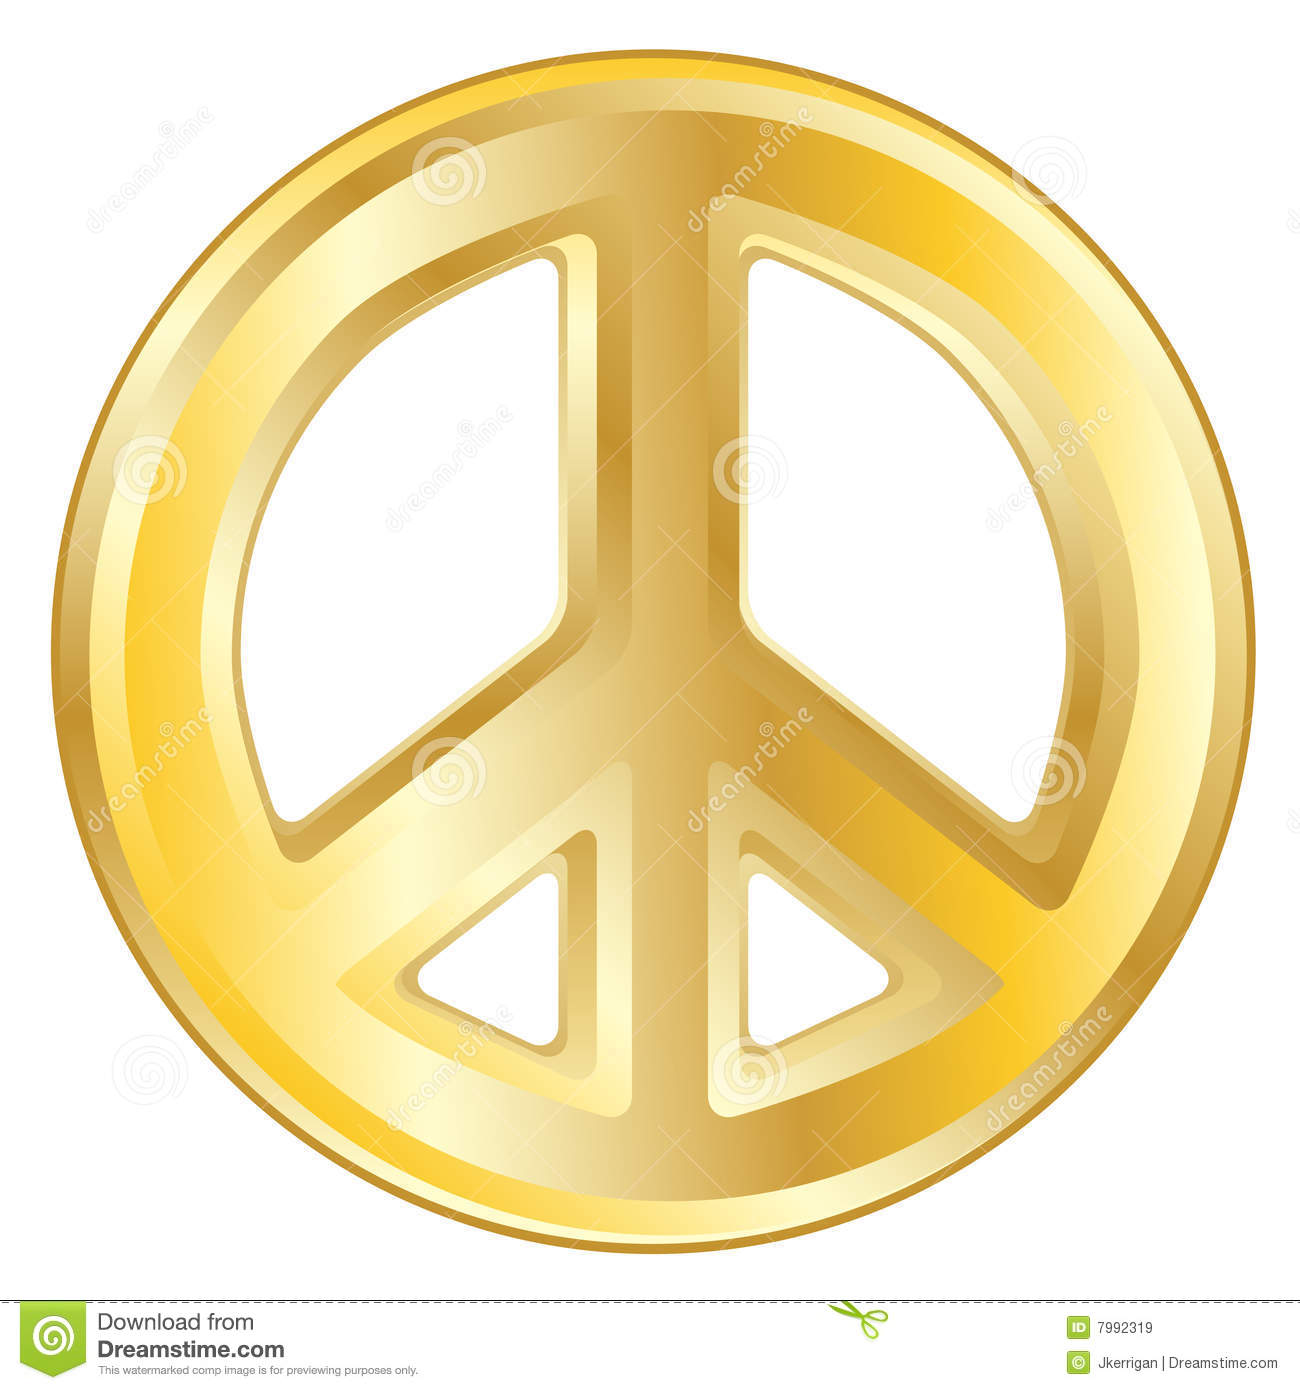 Gold Peace Sign Stock Vector Illustration Of Peace Icon 7992319